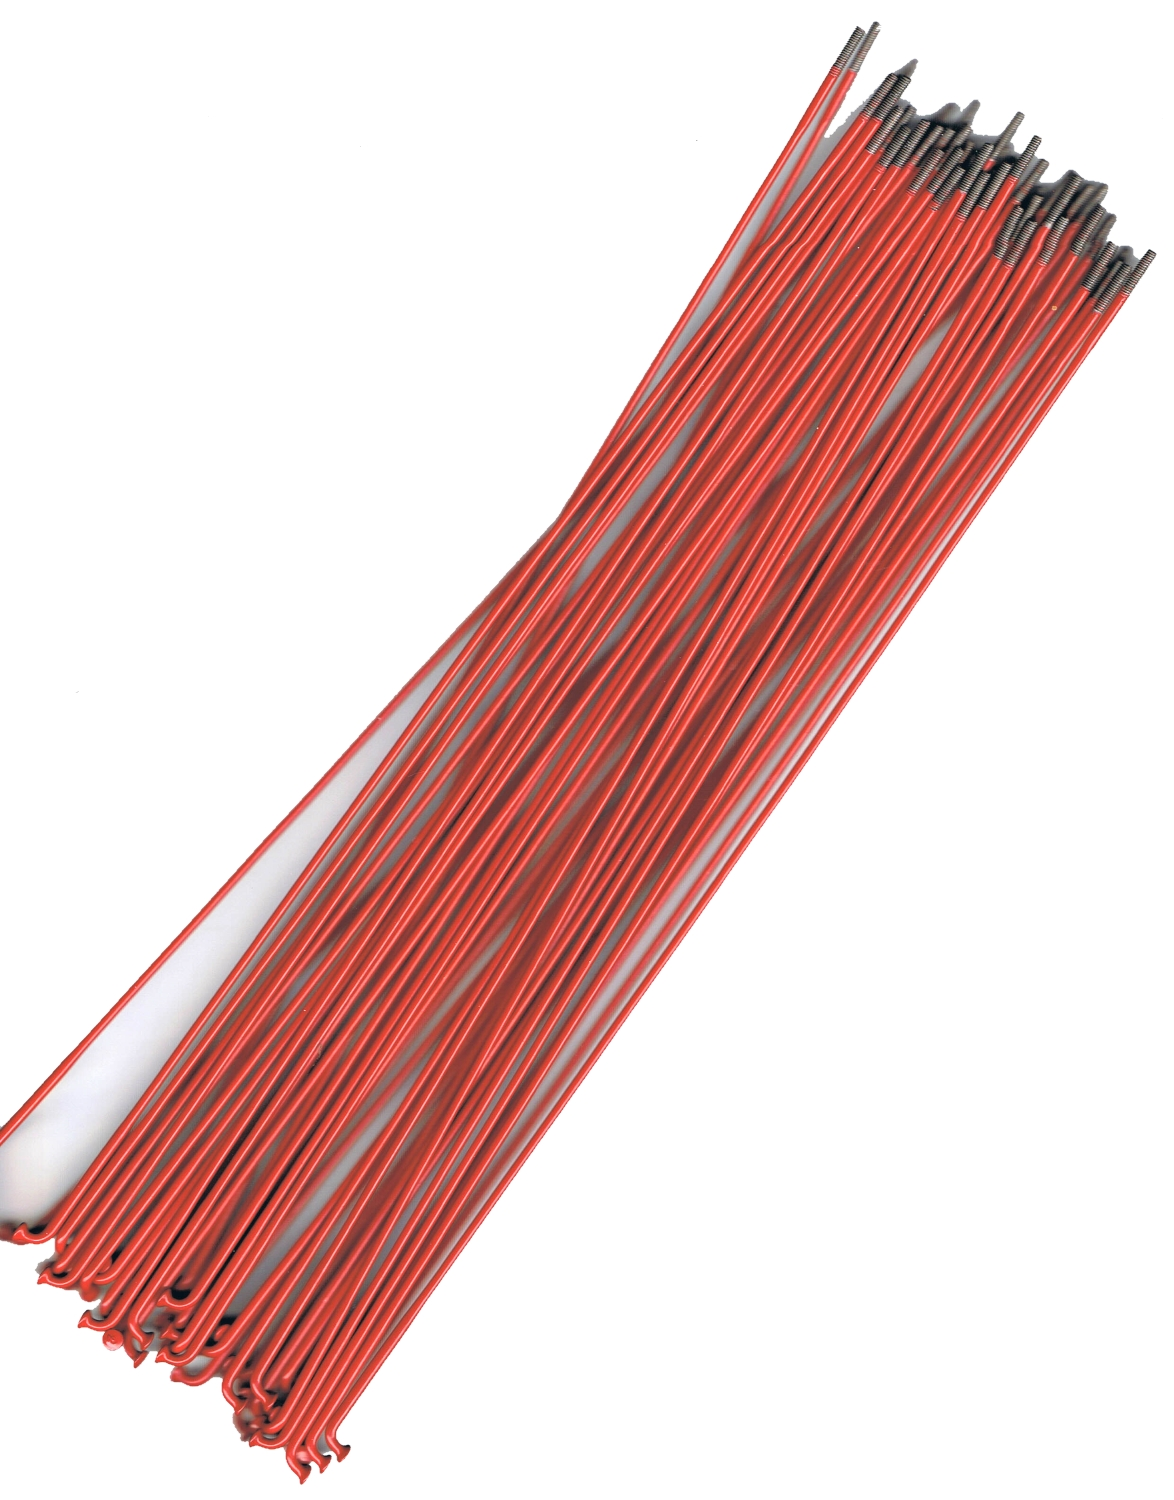 American Classic Red Butted Spokes 255 - 290mm J Bend 14 - 15g